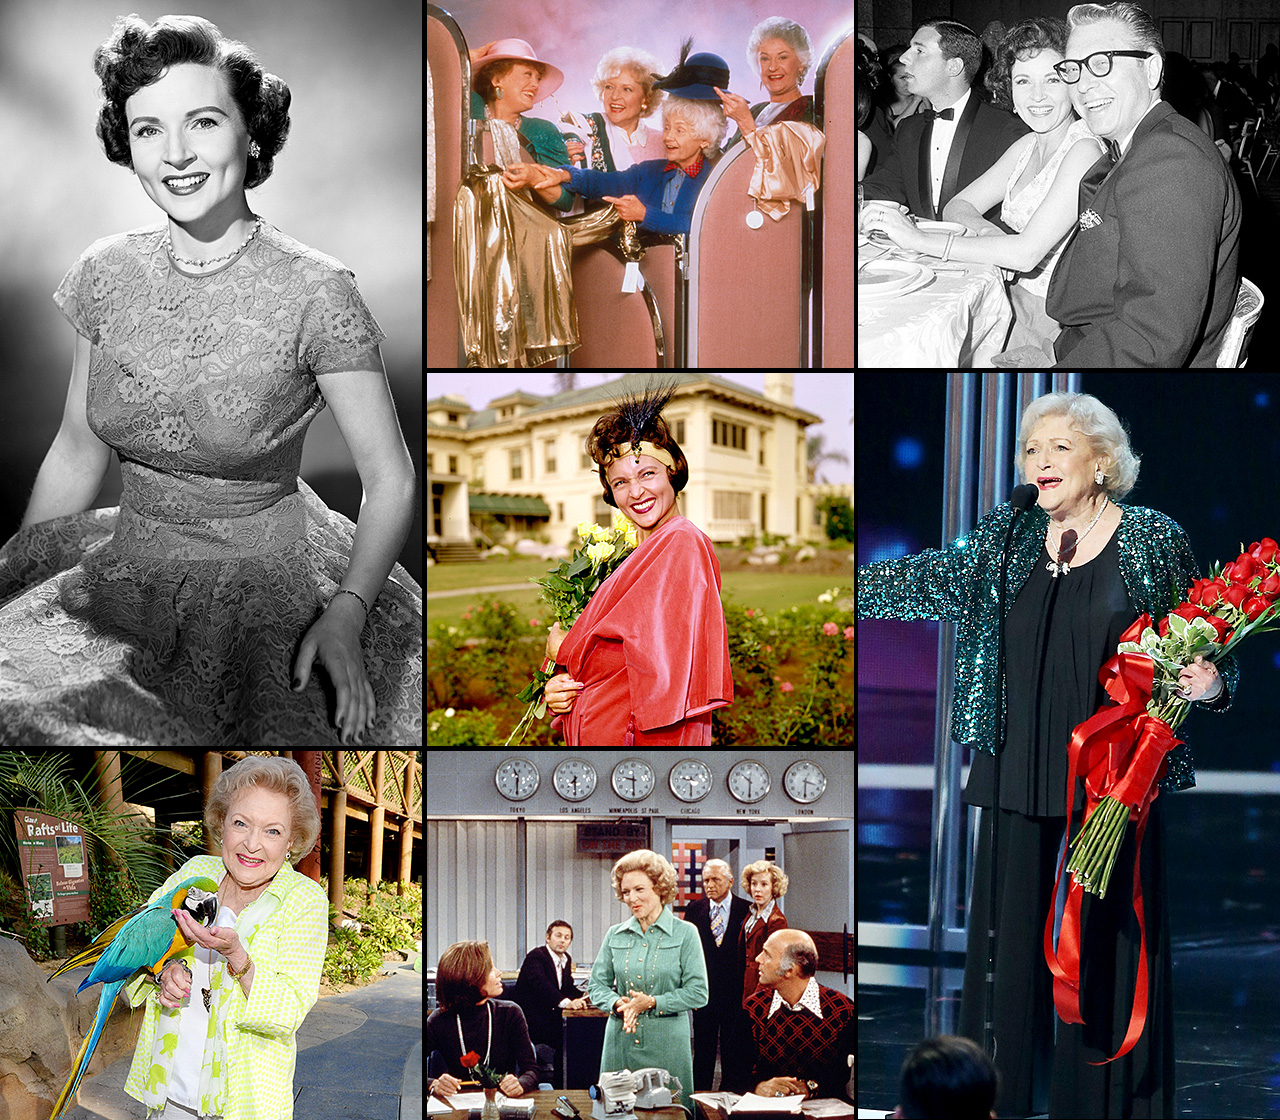 All hail, Queen Betty! With a career spanning nearly eight decades and more than 100 TV and film credits to her name, Betty White is one of the most recognized names in entertainment.